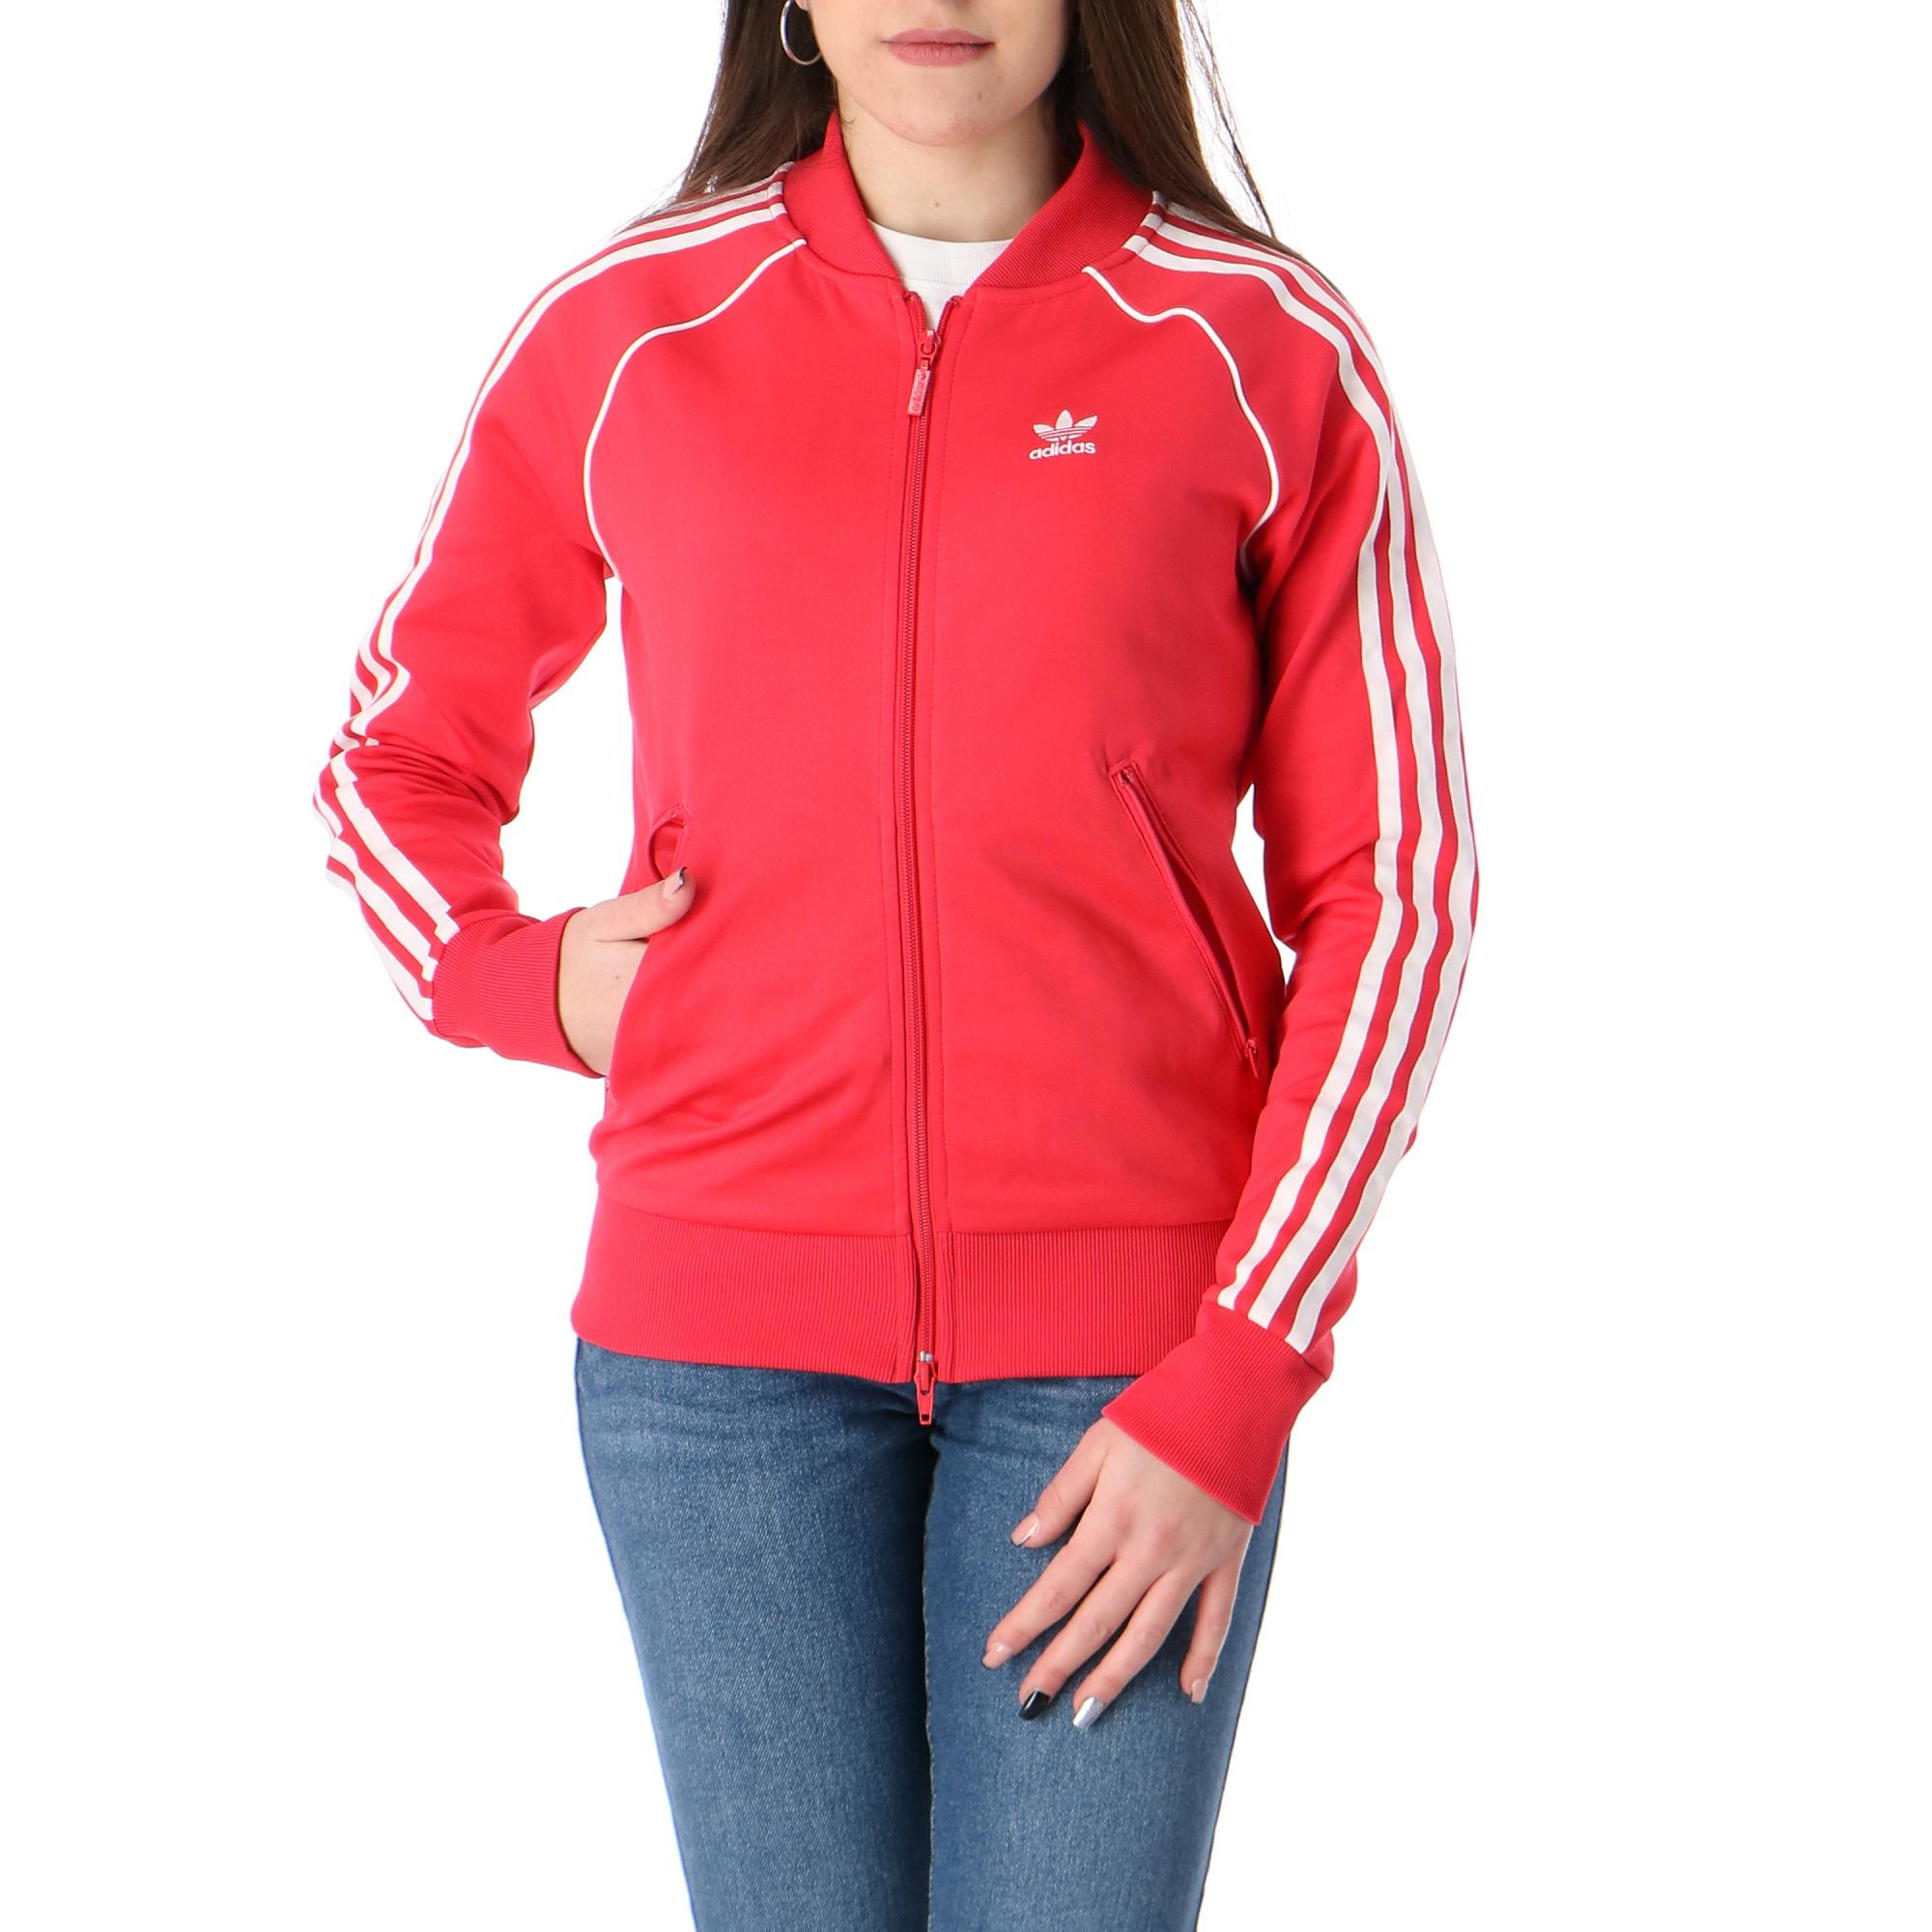 Adidas Sst Tracktop Pb Power pink white